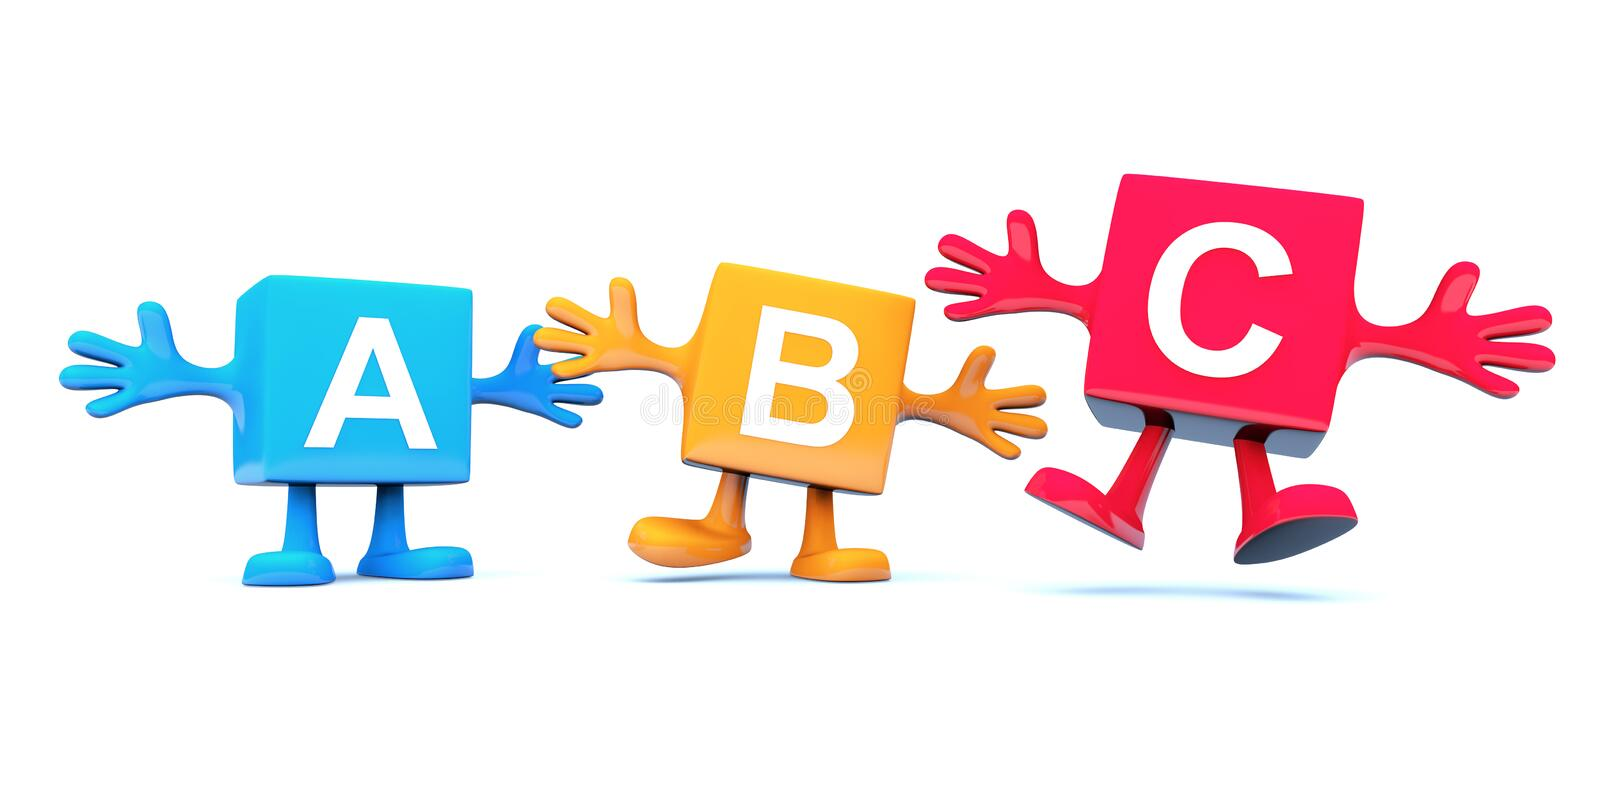 ABC character, colored cubes royalty free illustration